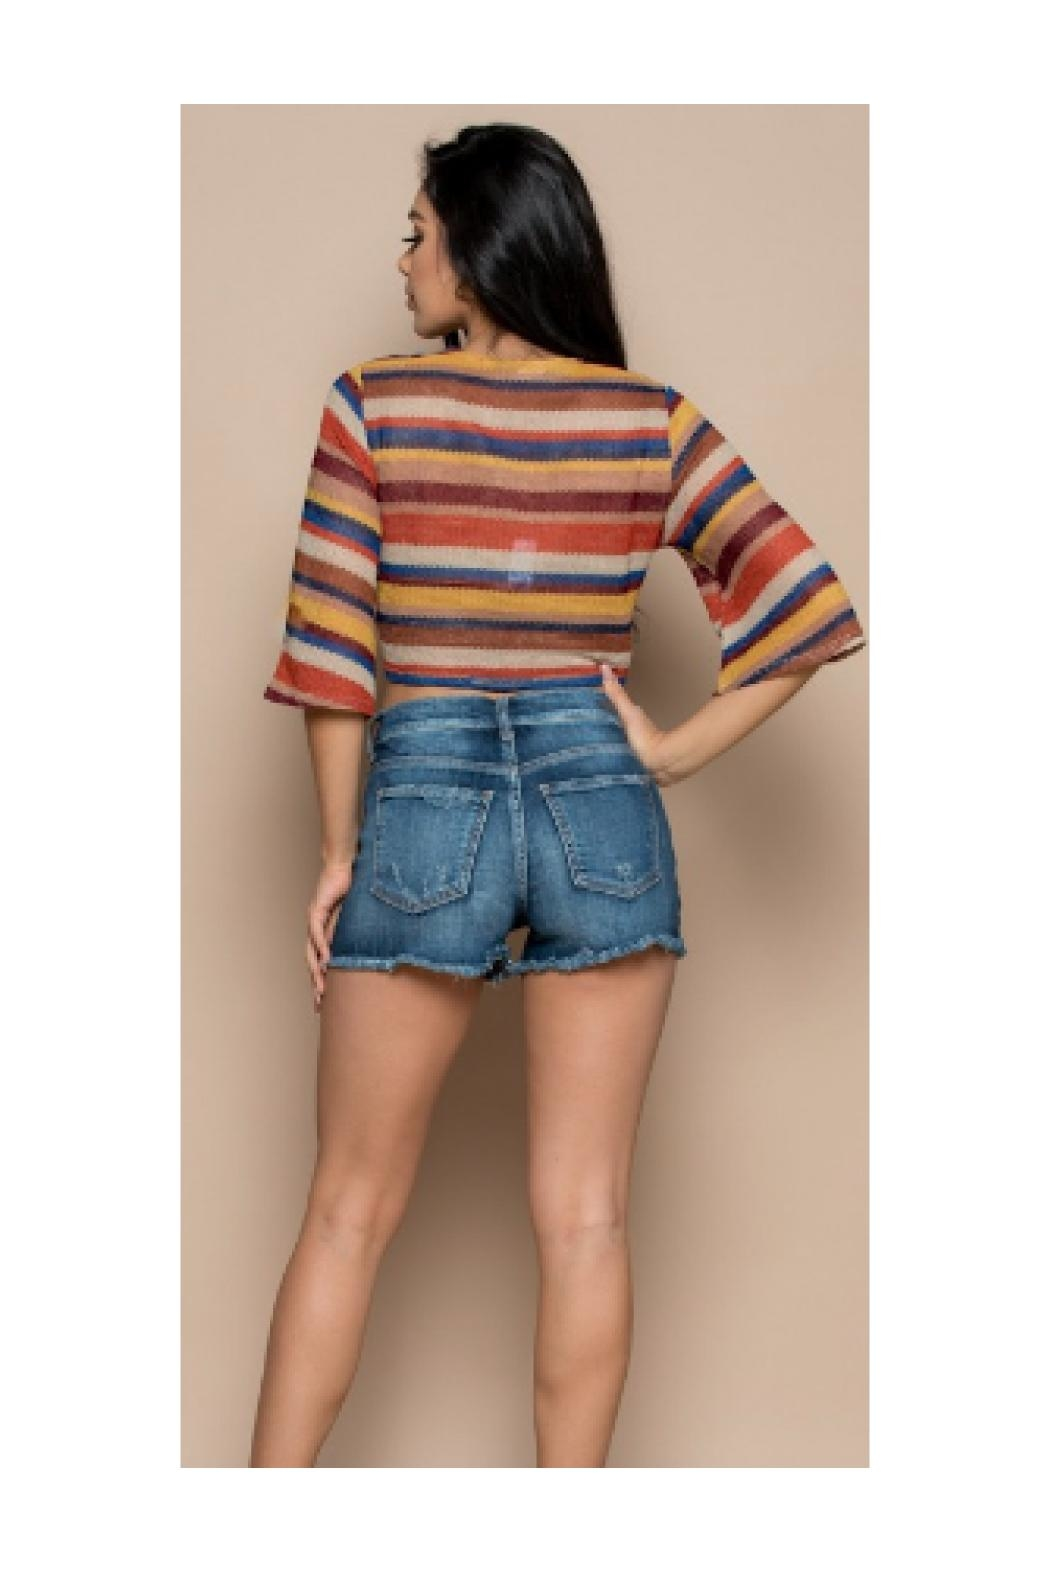 Polly & Esther Multicolor Stripe Crop-Top - Side Cropped Image